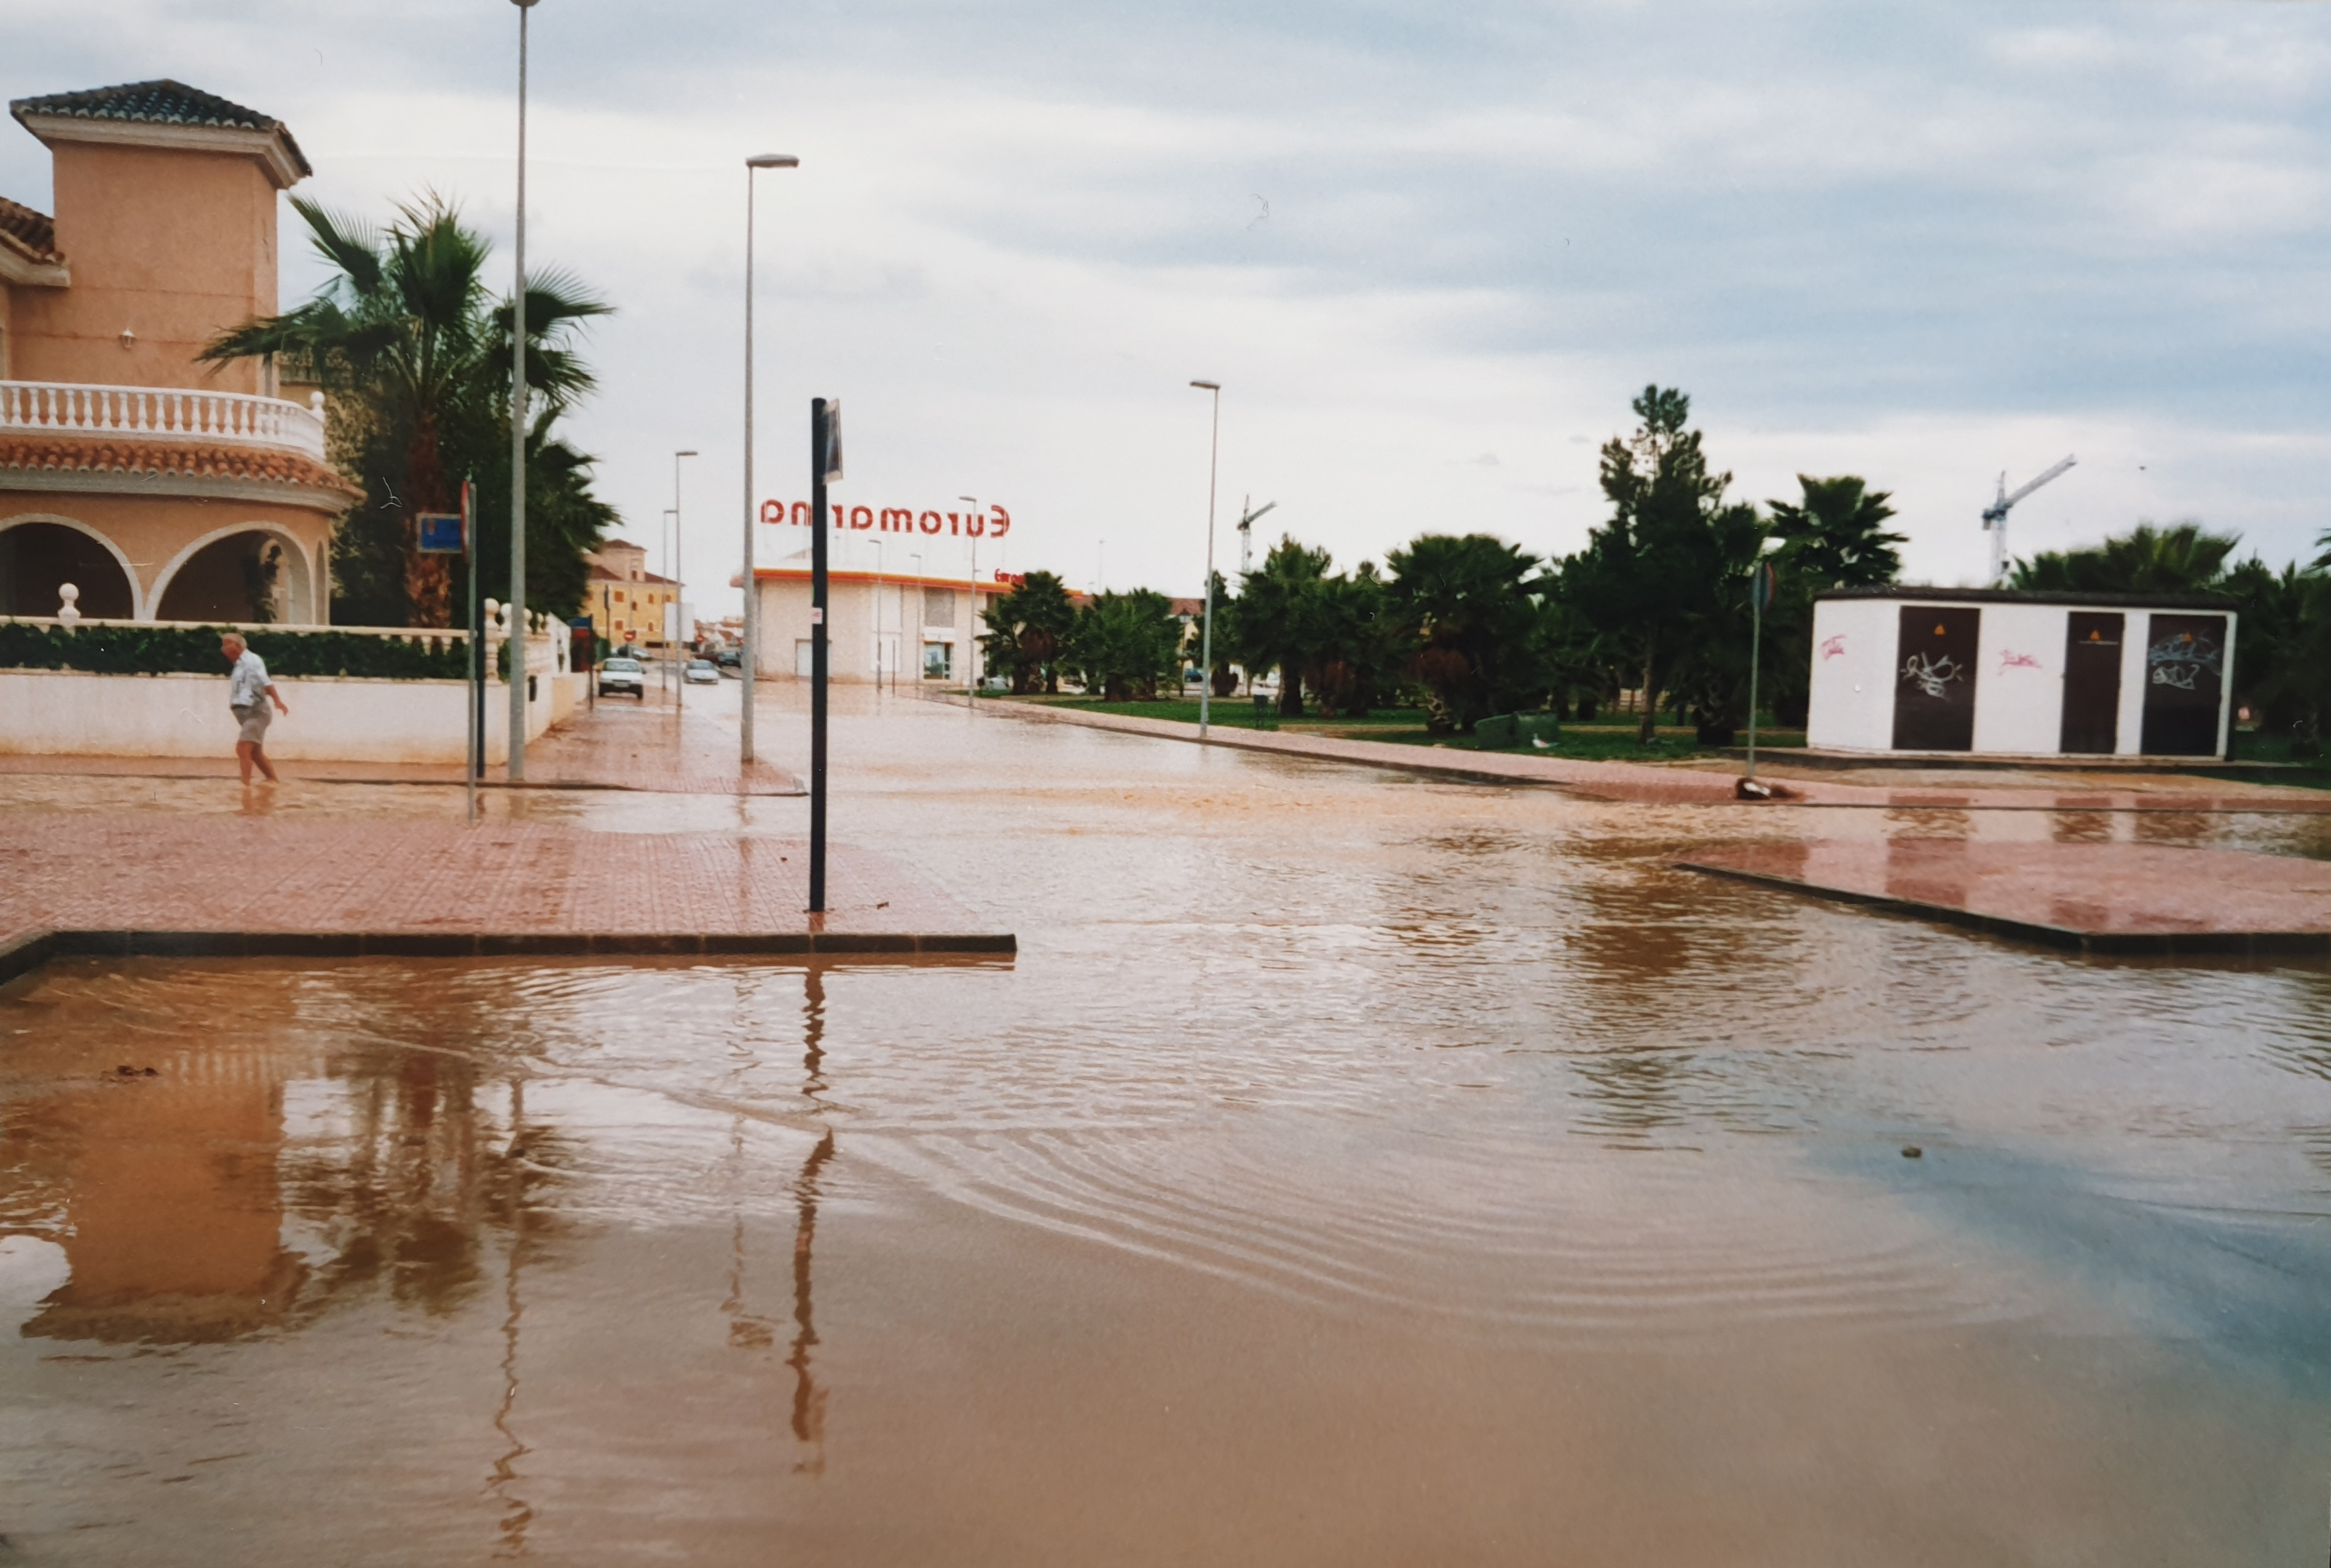 Flooding in C Isla de Tabarca